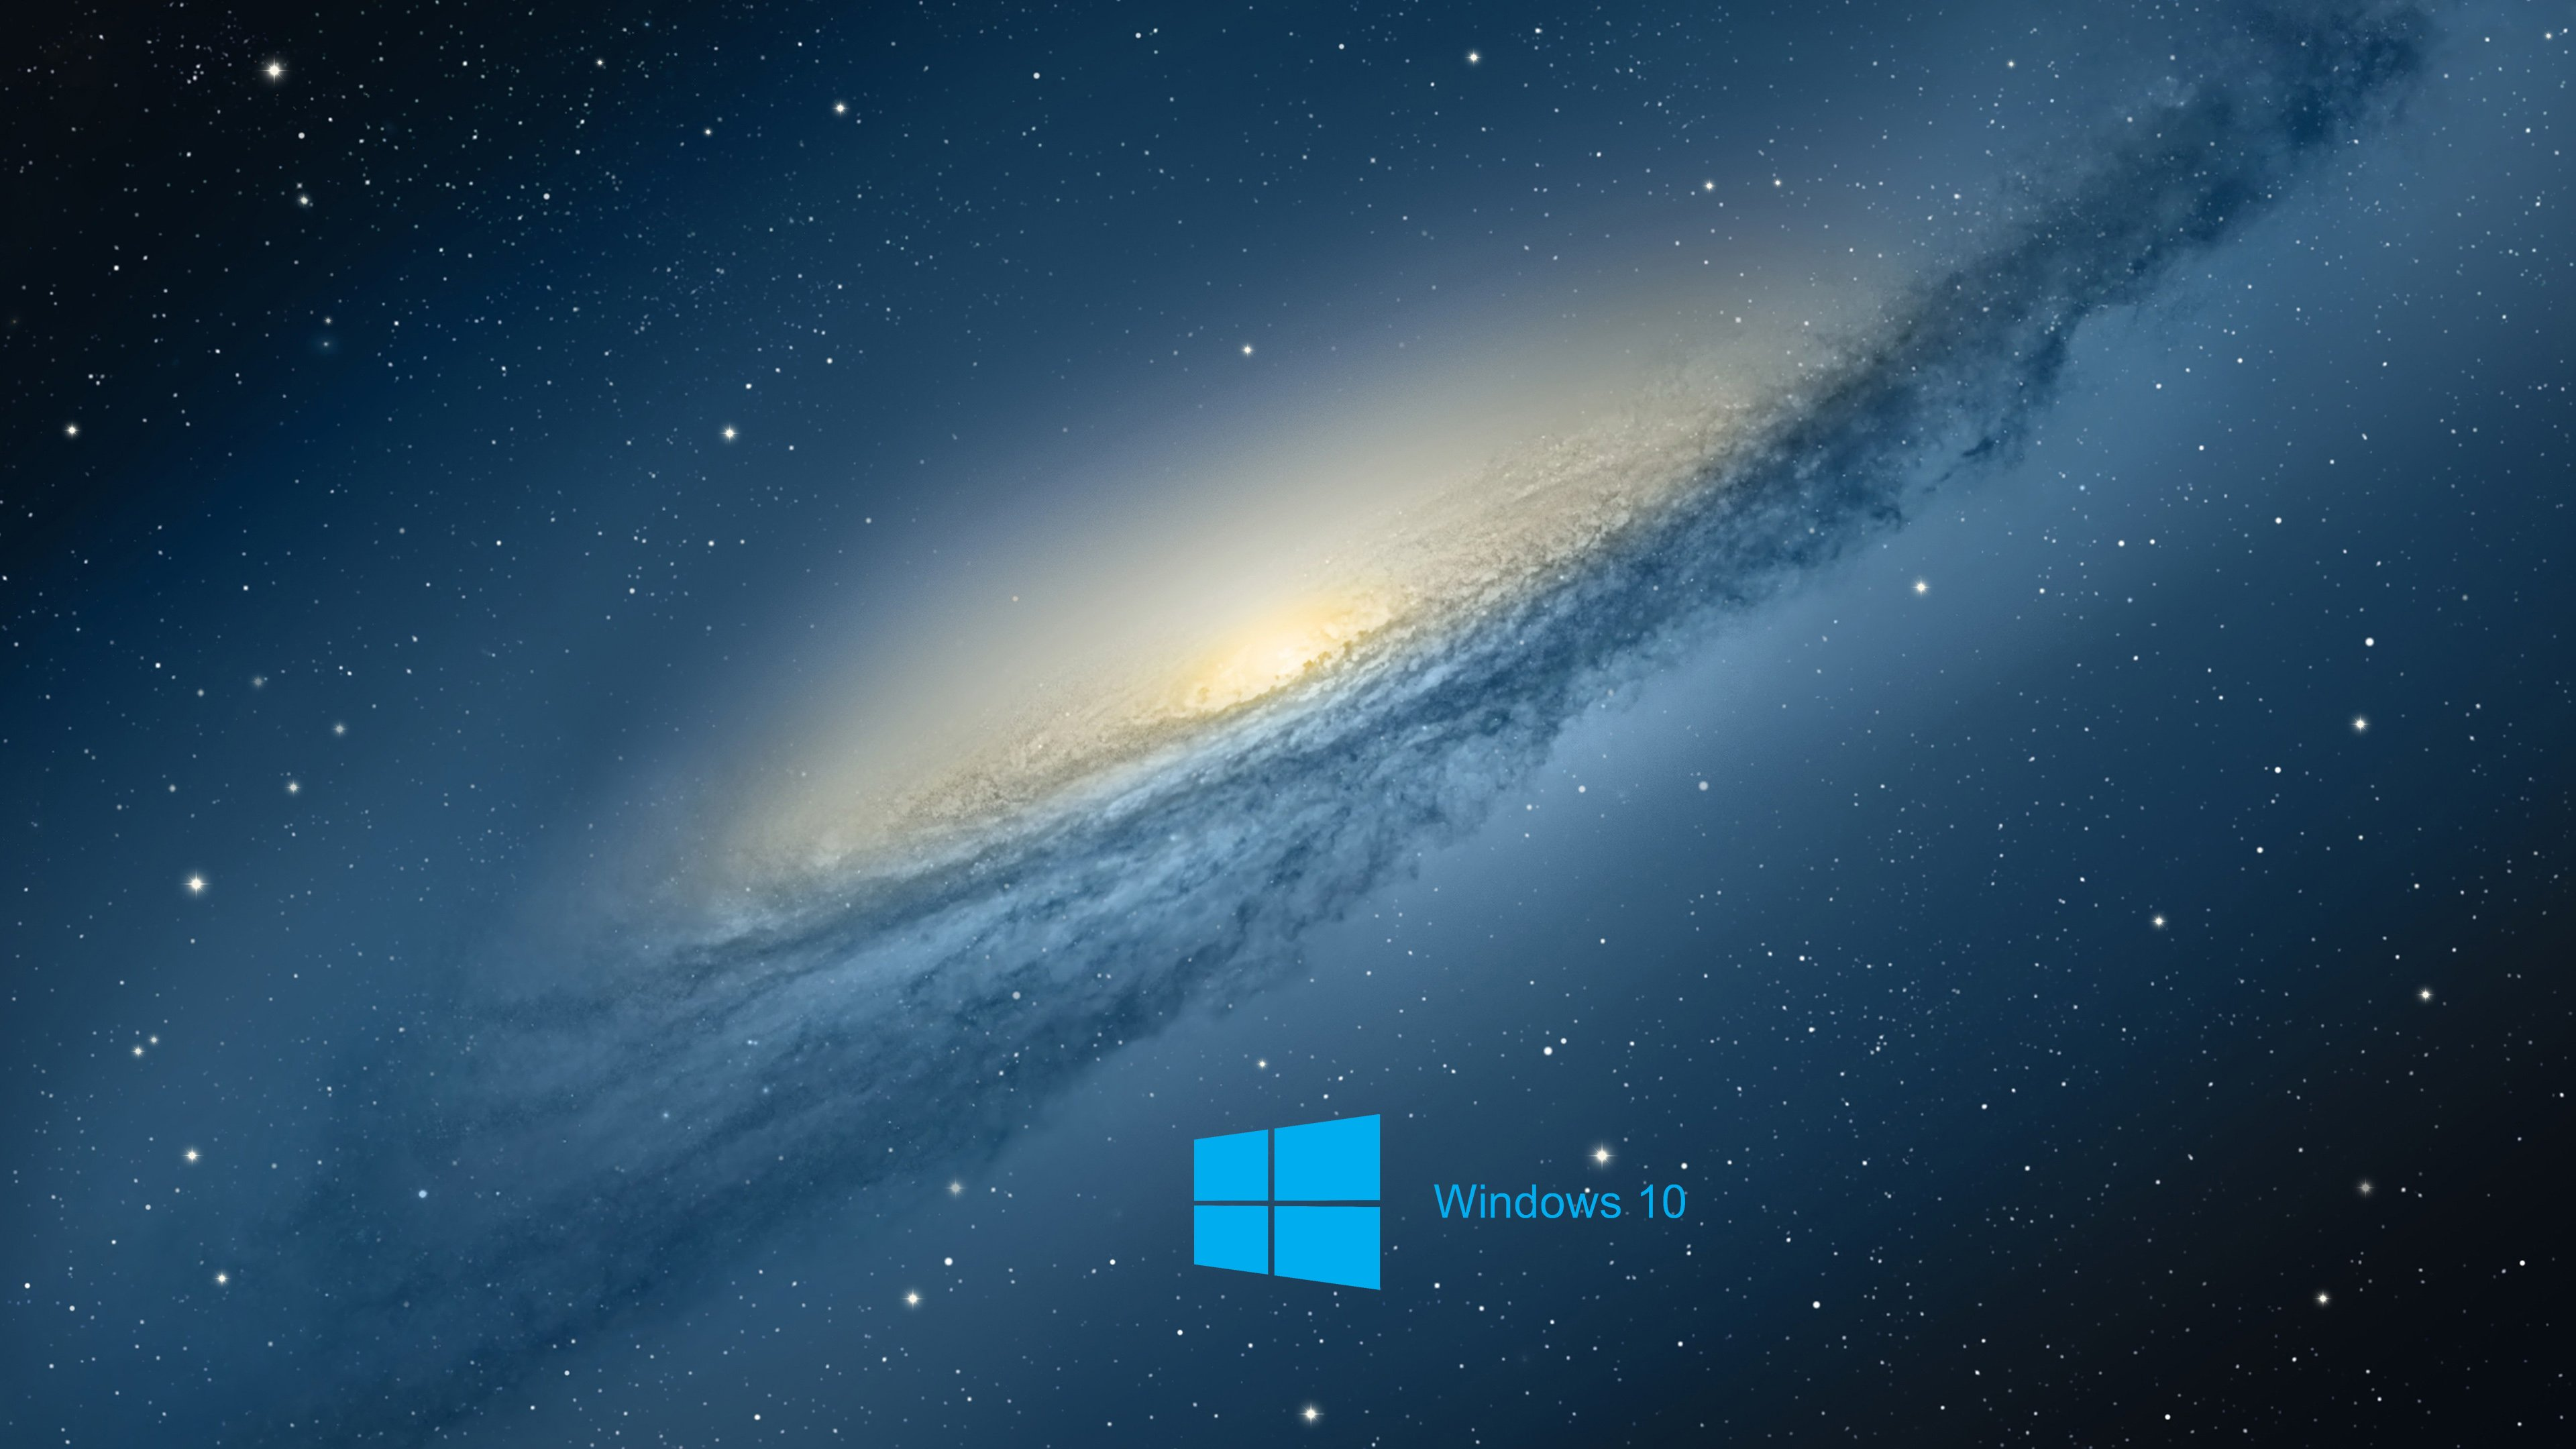 windows 10 desktop background with scientific space planet galaxy